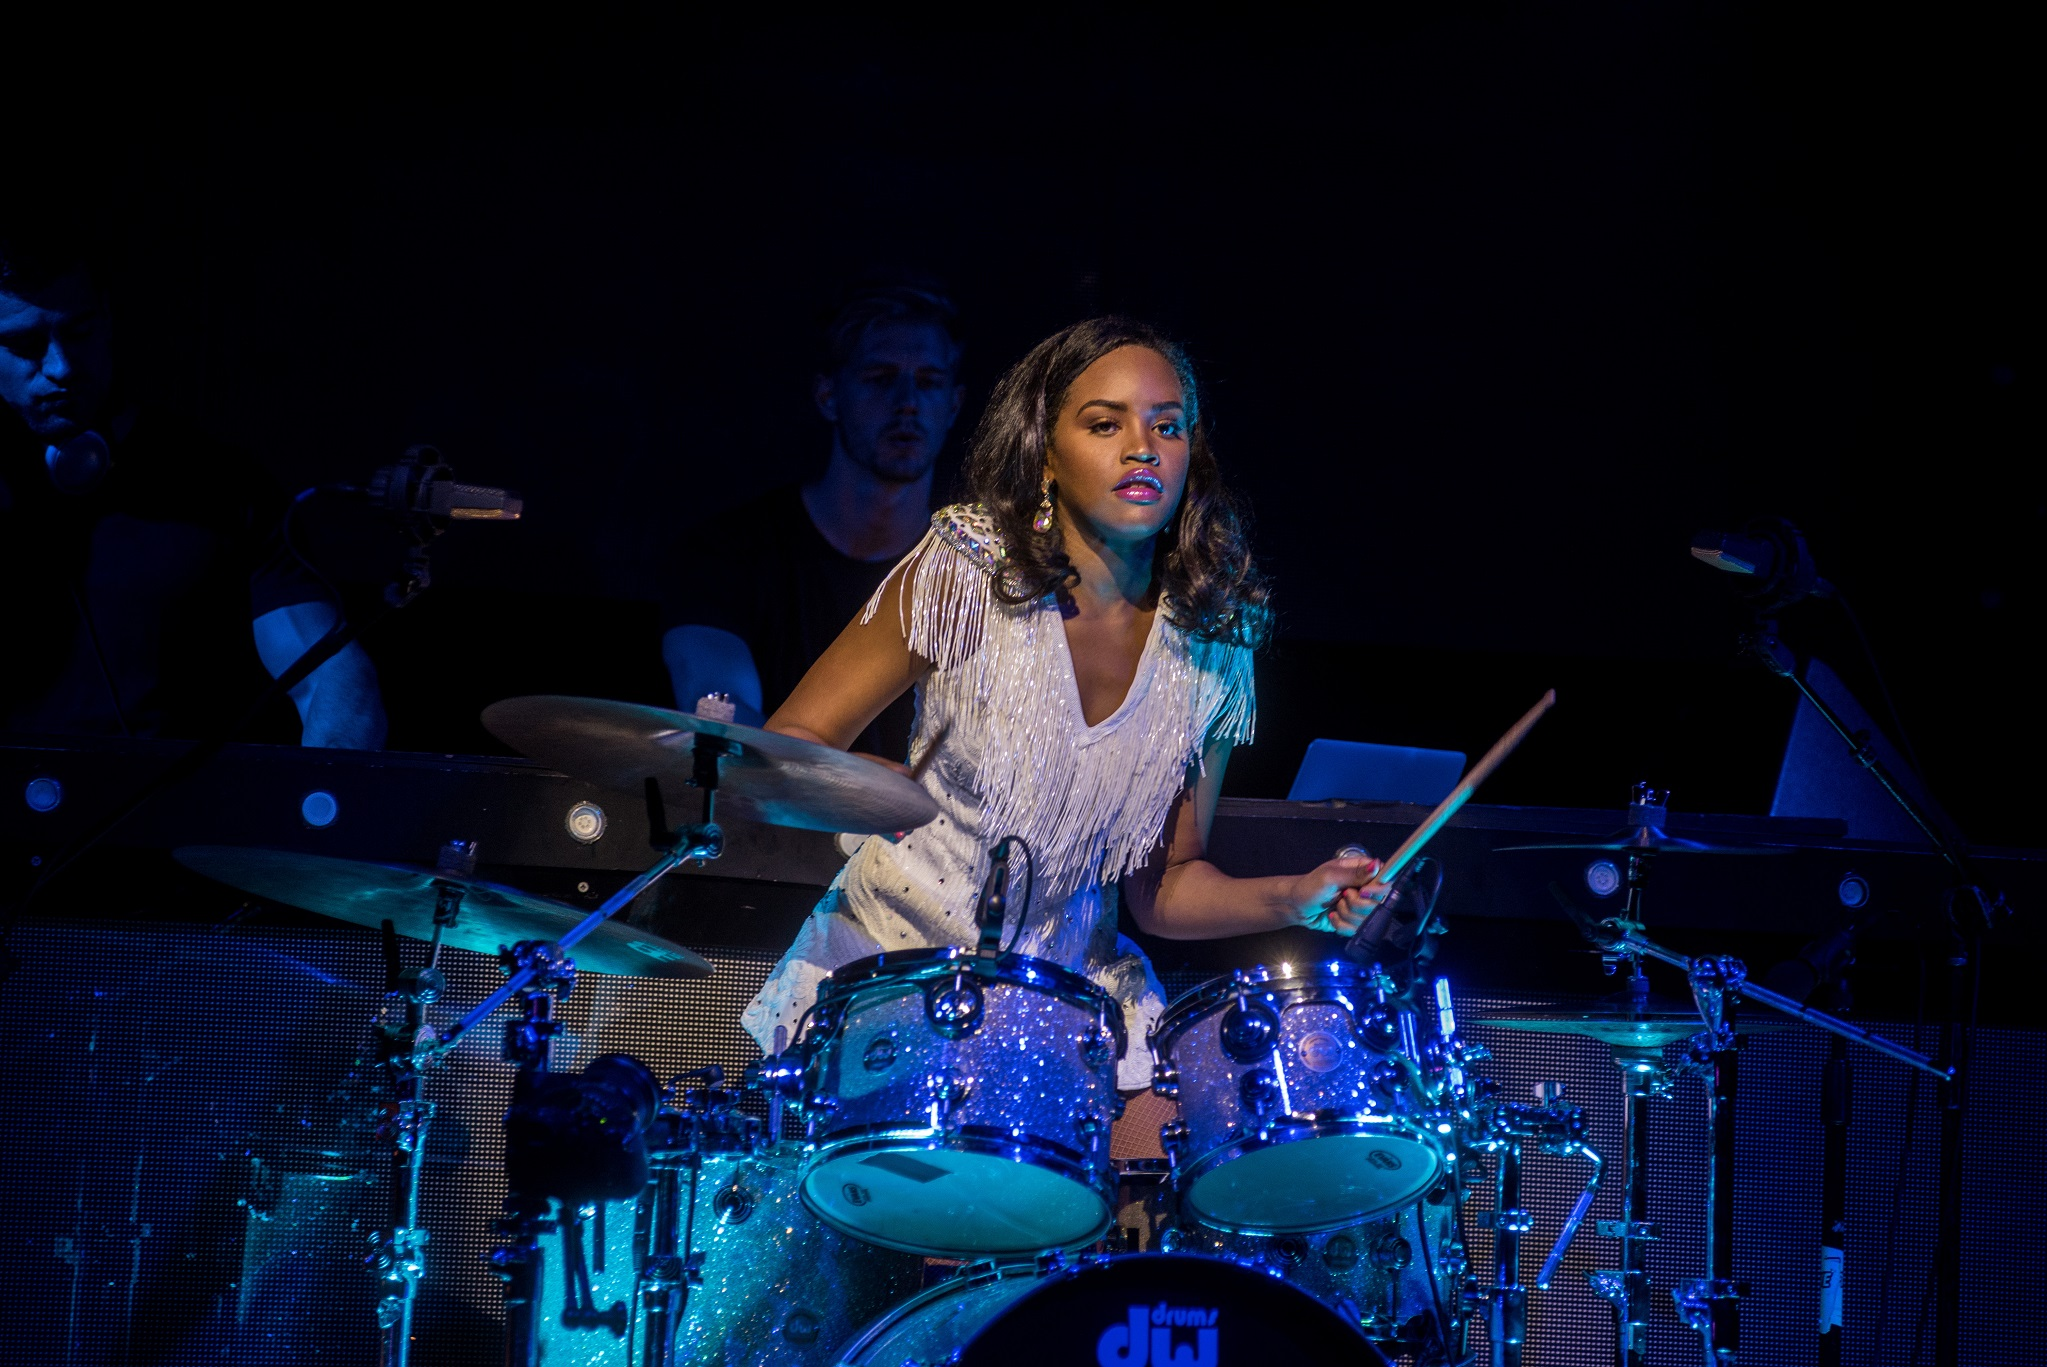 Glorious-Singer-Livetronica Drummer-Producer-Songwriter-Marquee-Nightclub-Video-New York-NY-4lr.jpg